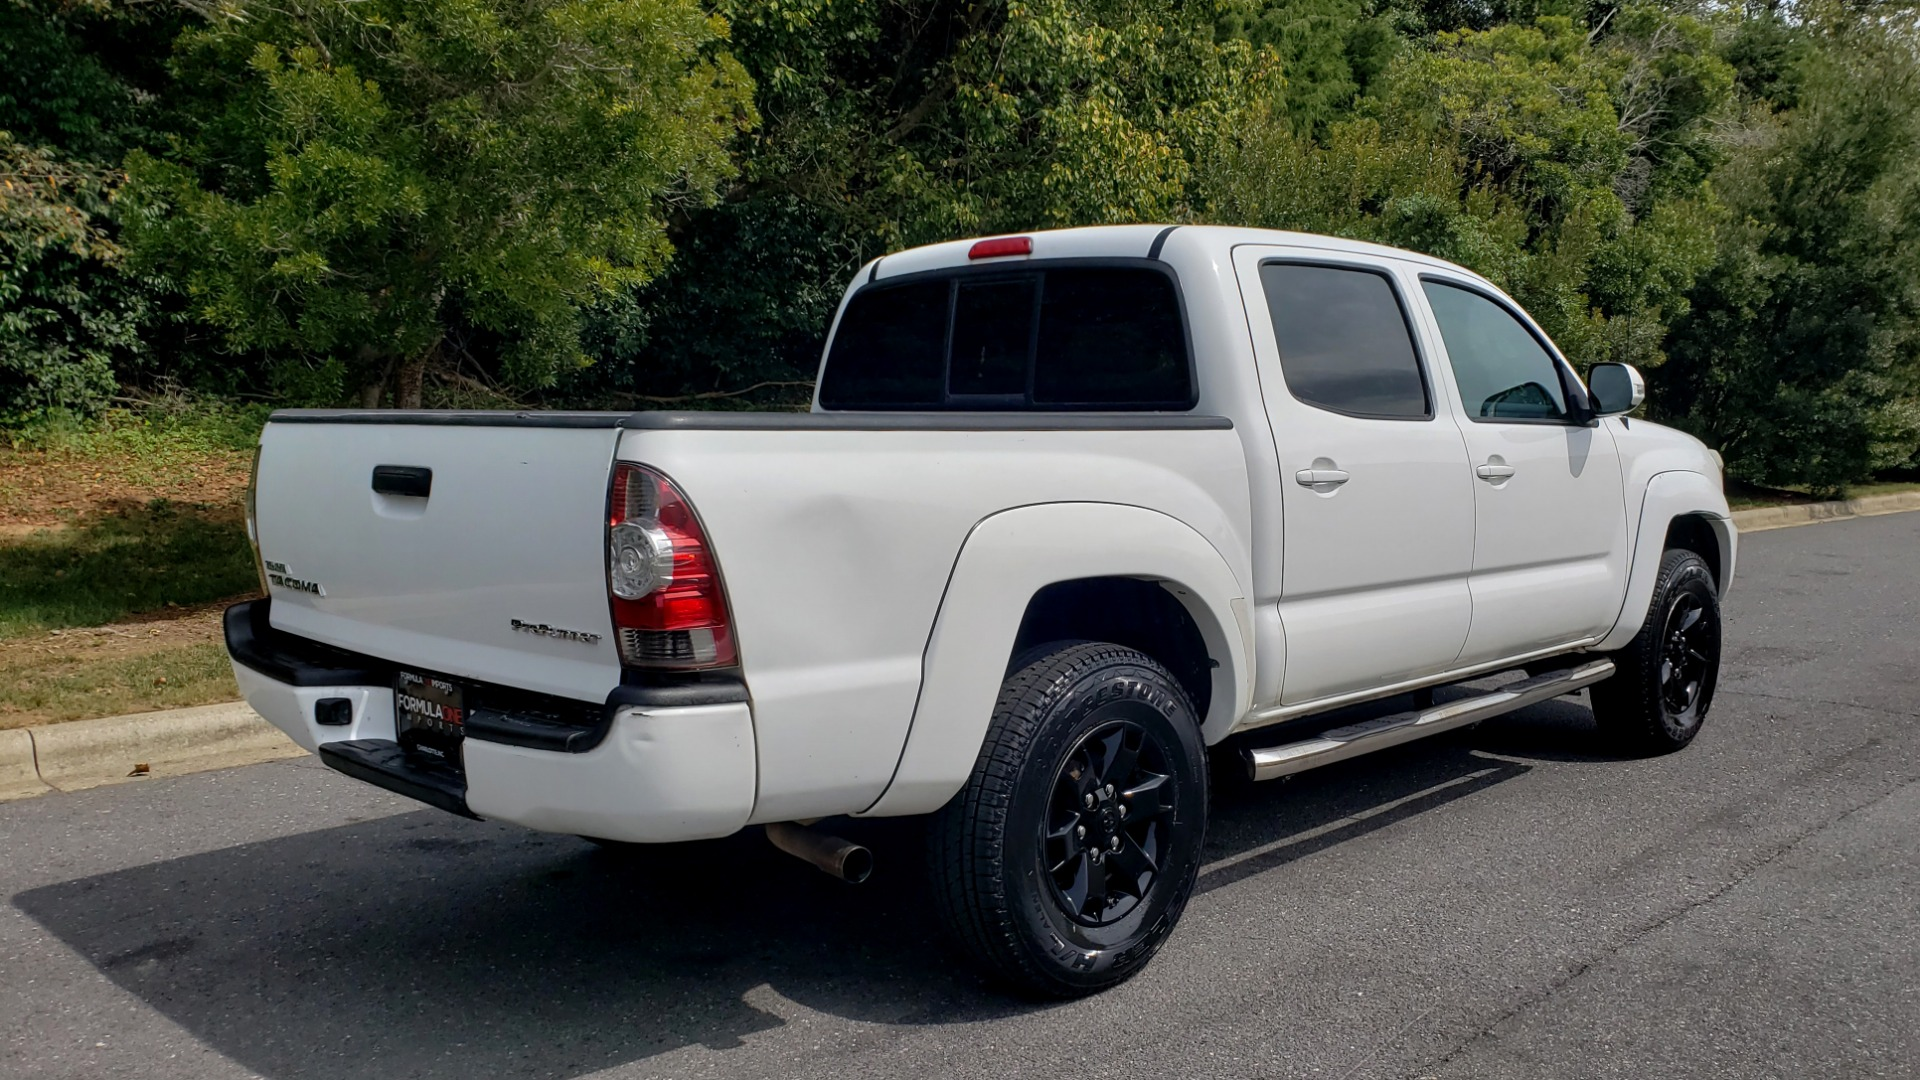 Used 2015 Toyota TACOMA PRERUNNER DOUBLE CAB/ 4-CYL / 4-SPD AUTO / SR PKG / CONV PKG for sale $15,995 at Formula Imports in Charlotte NC 28227 6